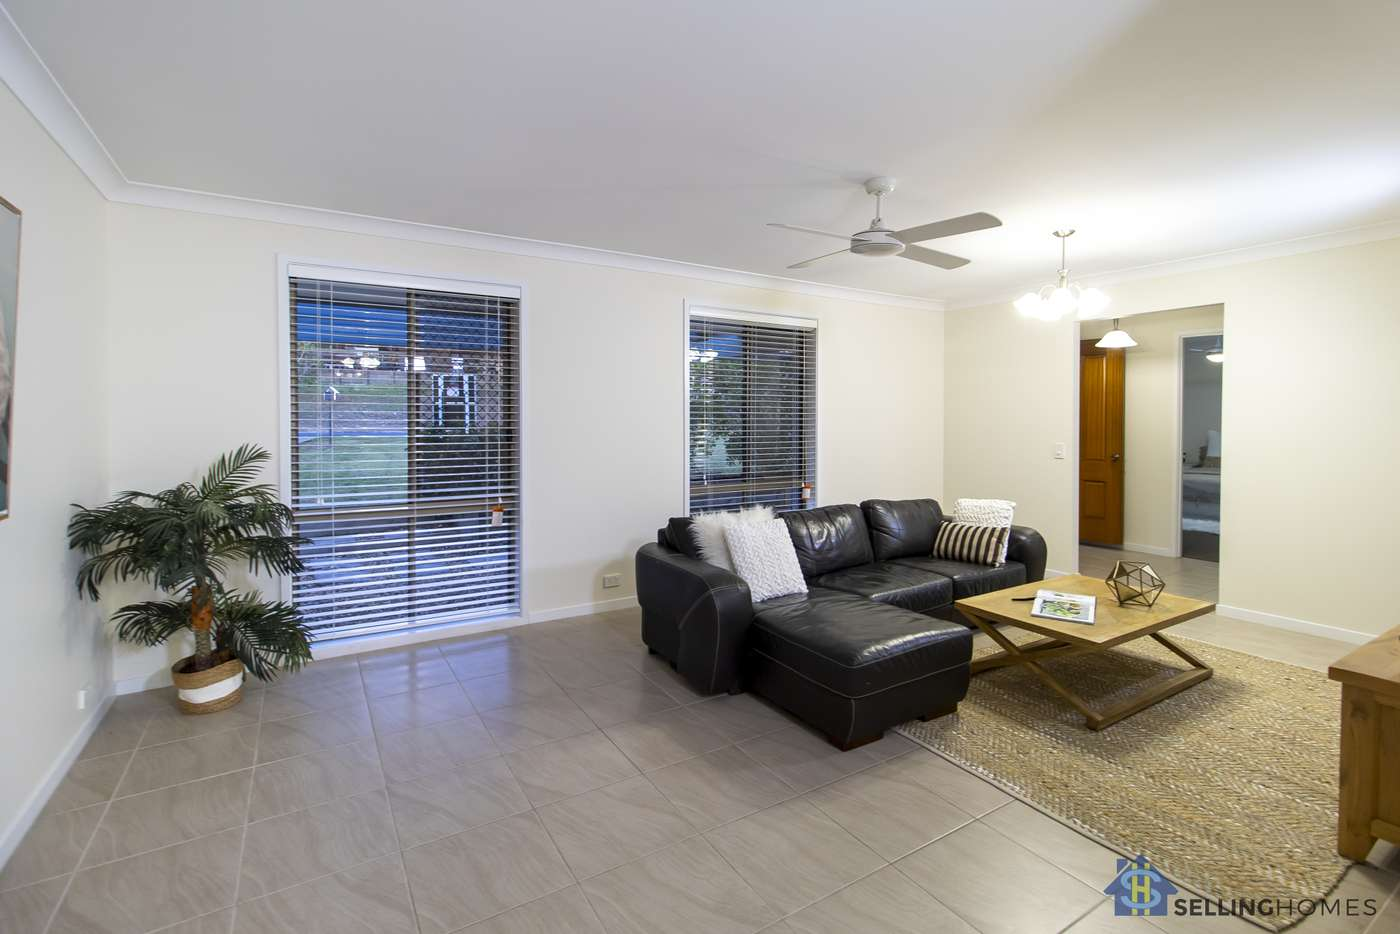 Fifth view of Homely house listing, 14 Zambesi St, Riverhills QLD 4074